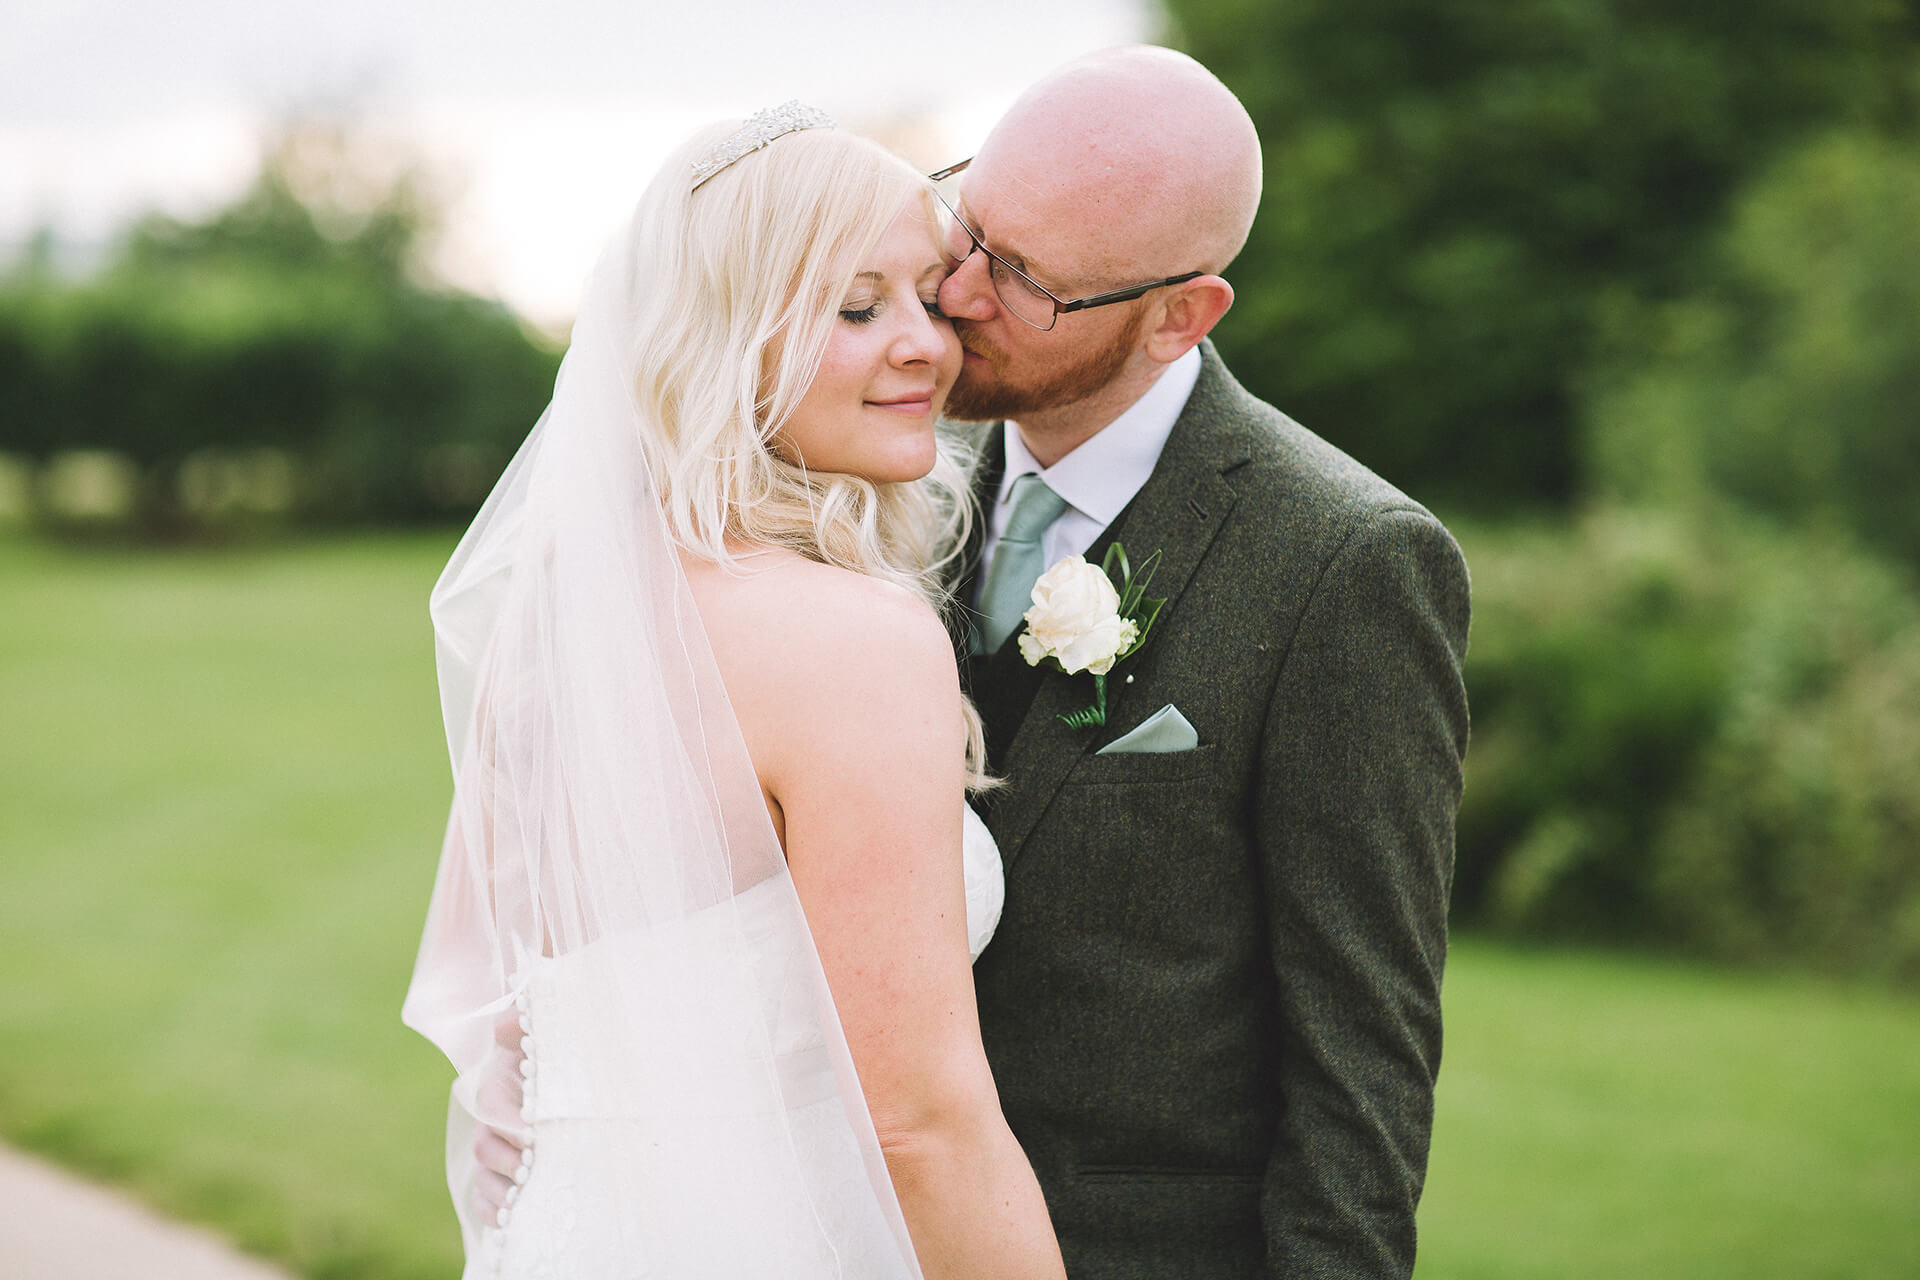 The groom kisses his bride in the grounds of this beautiful countryside wedding venue in Cambridgeshire